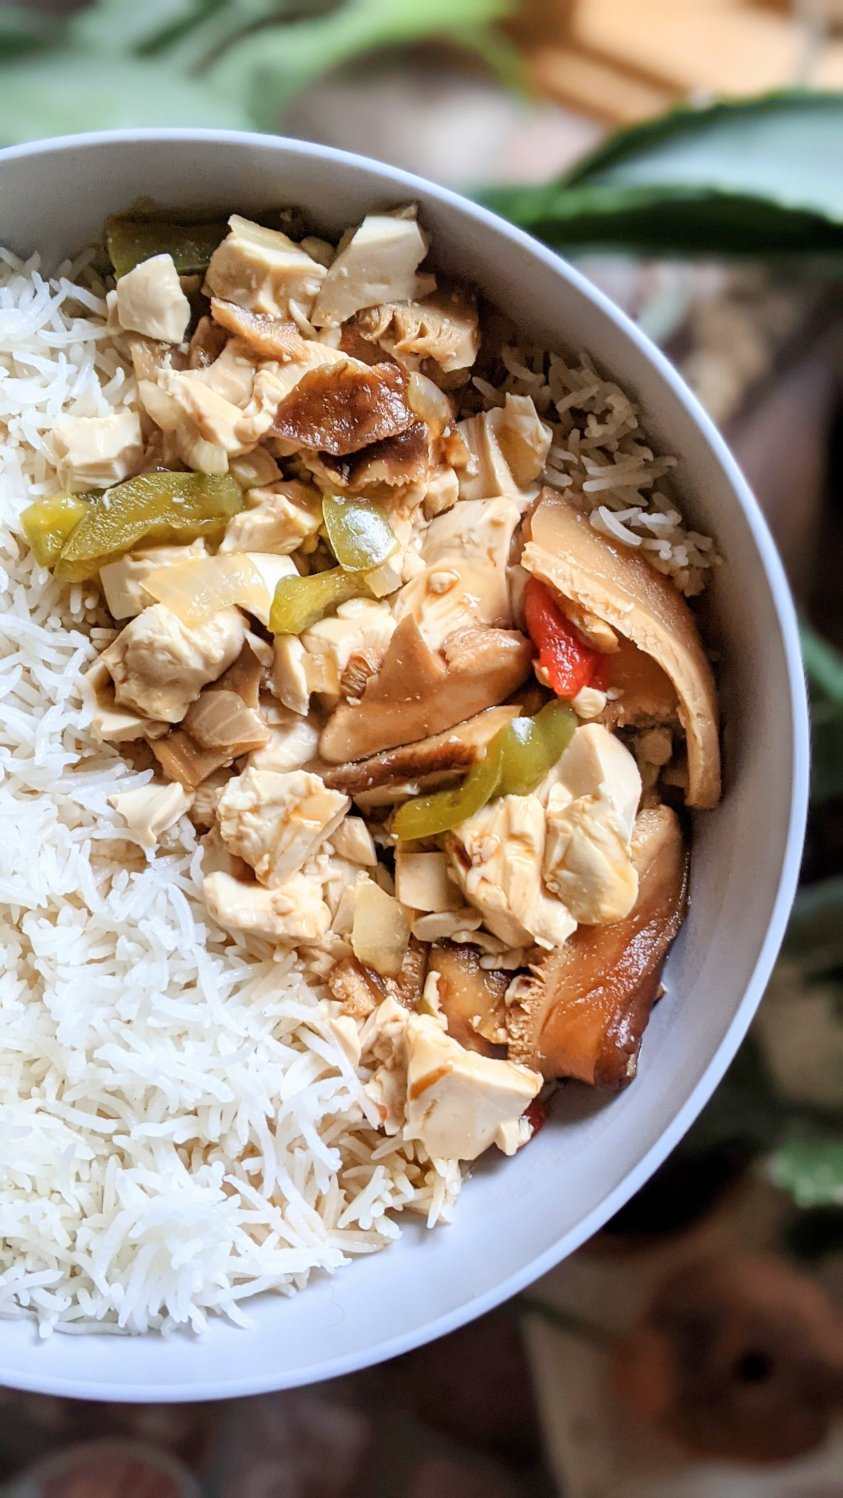 miso tofu recipe easy with silken tofu bell peppers dried mushrooms shiitake mushrooms tamati gluten free soy sauce and agane syrup naturally sweet chinese food no added sugar recipes vegan